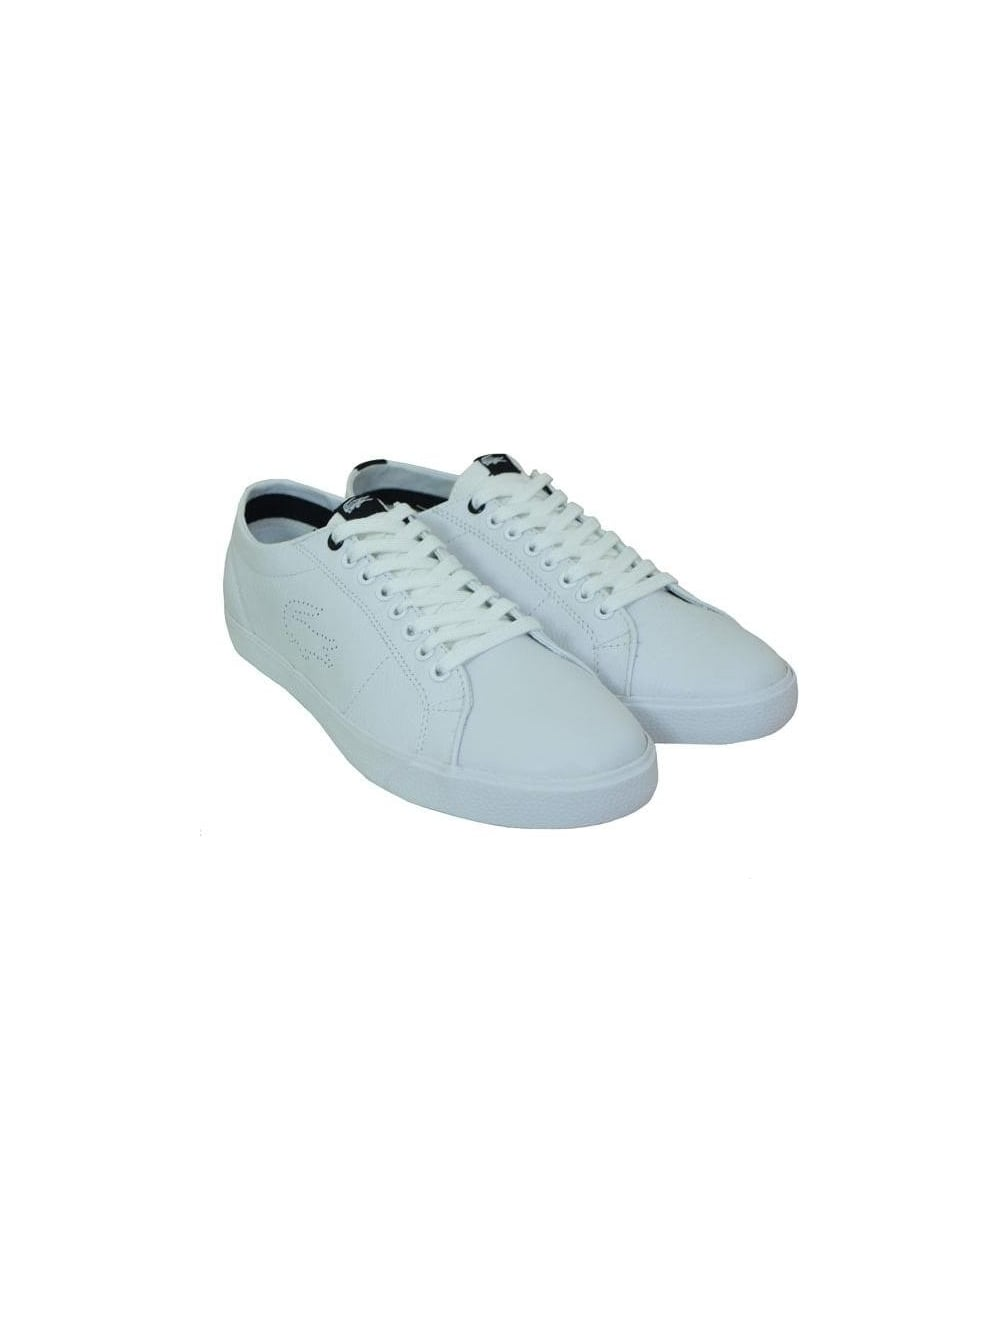 bb04ac6100e27 Lacoste Marcel HS SPM Trainer in White - Buy Lacoste at Northern Threads